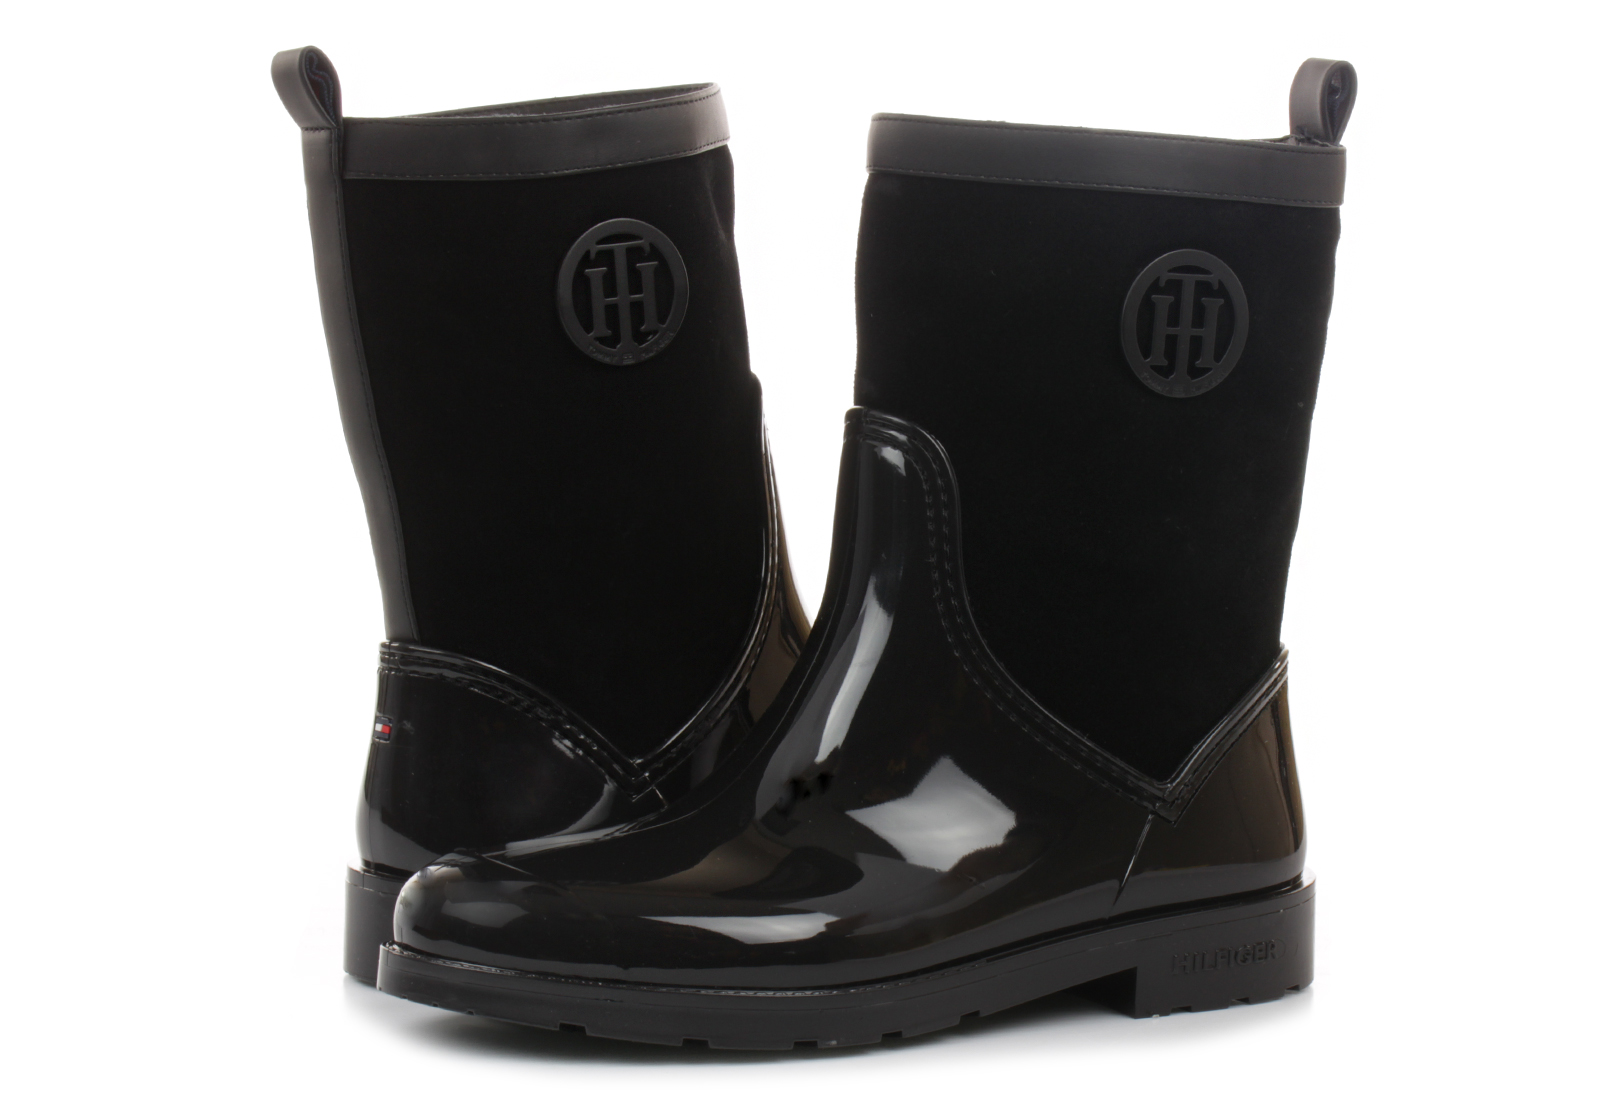 tommy hilfiger boots oxford 8rw 17f 1816 990 online shop for sneakers shoes and boots. Black Bedroom Furniture Sets. Home Design Ideas